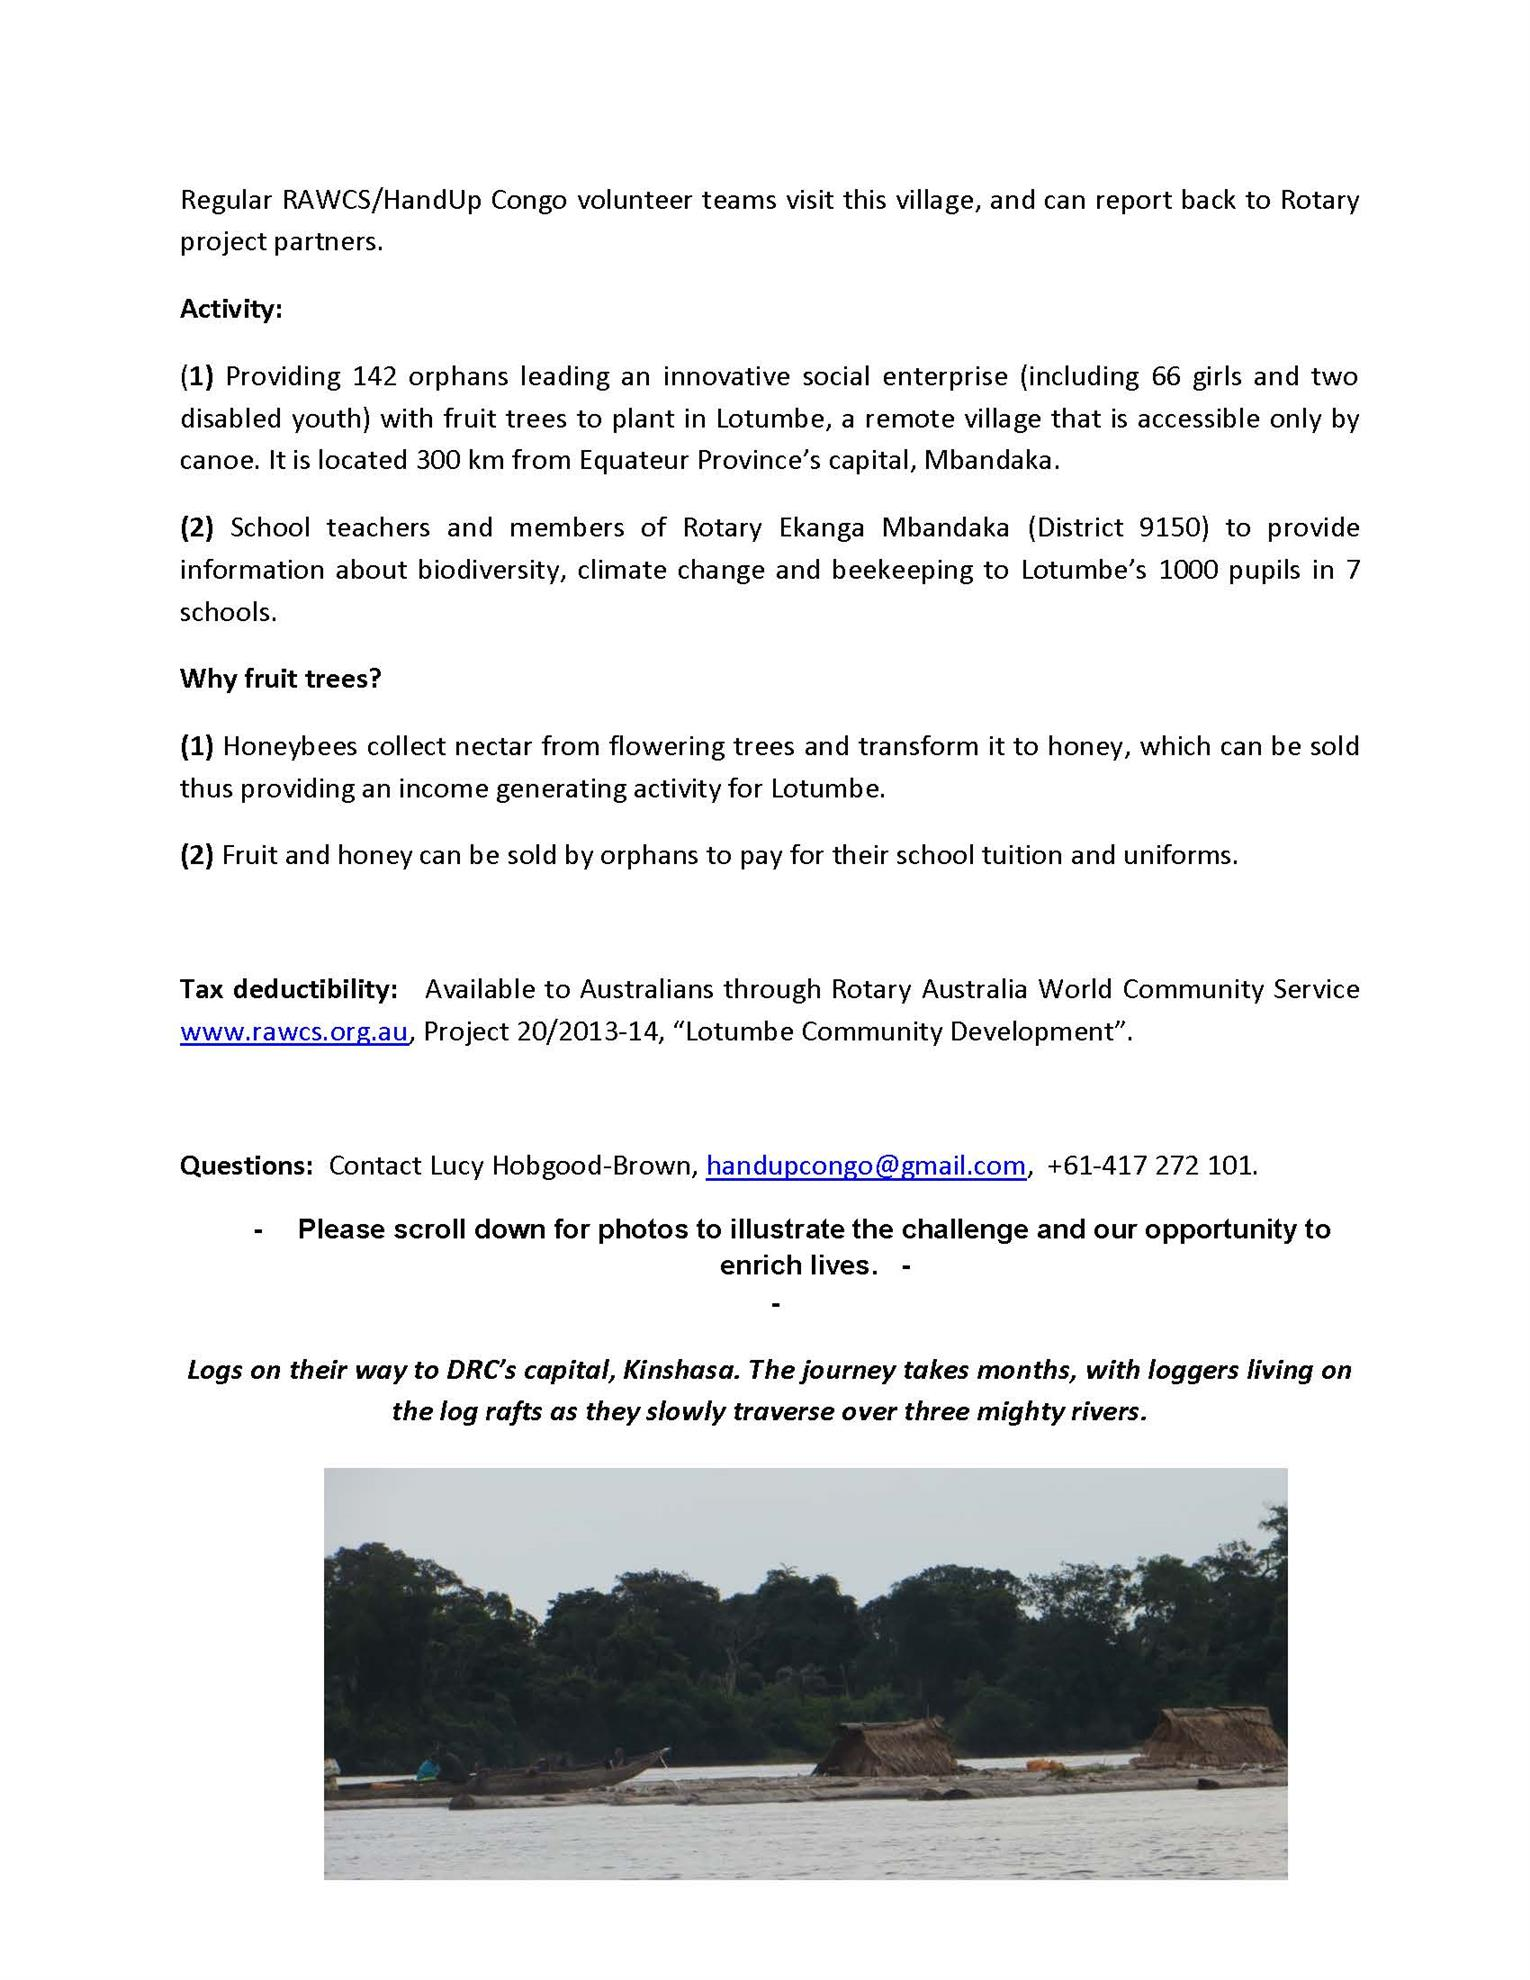 TREE PLANTING PROJECT IN CONGO | Rotary District 9685